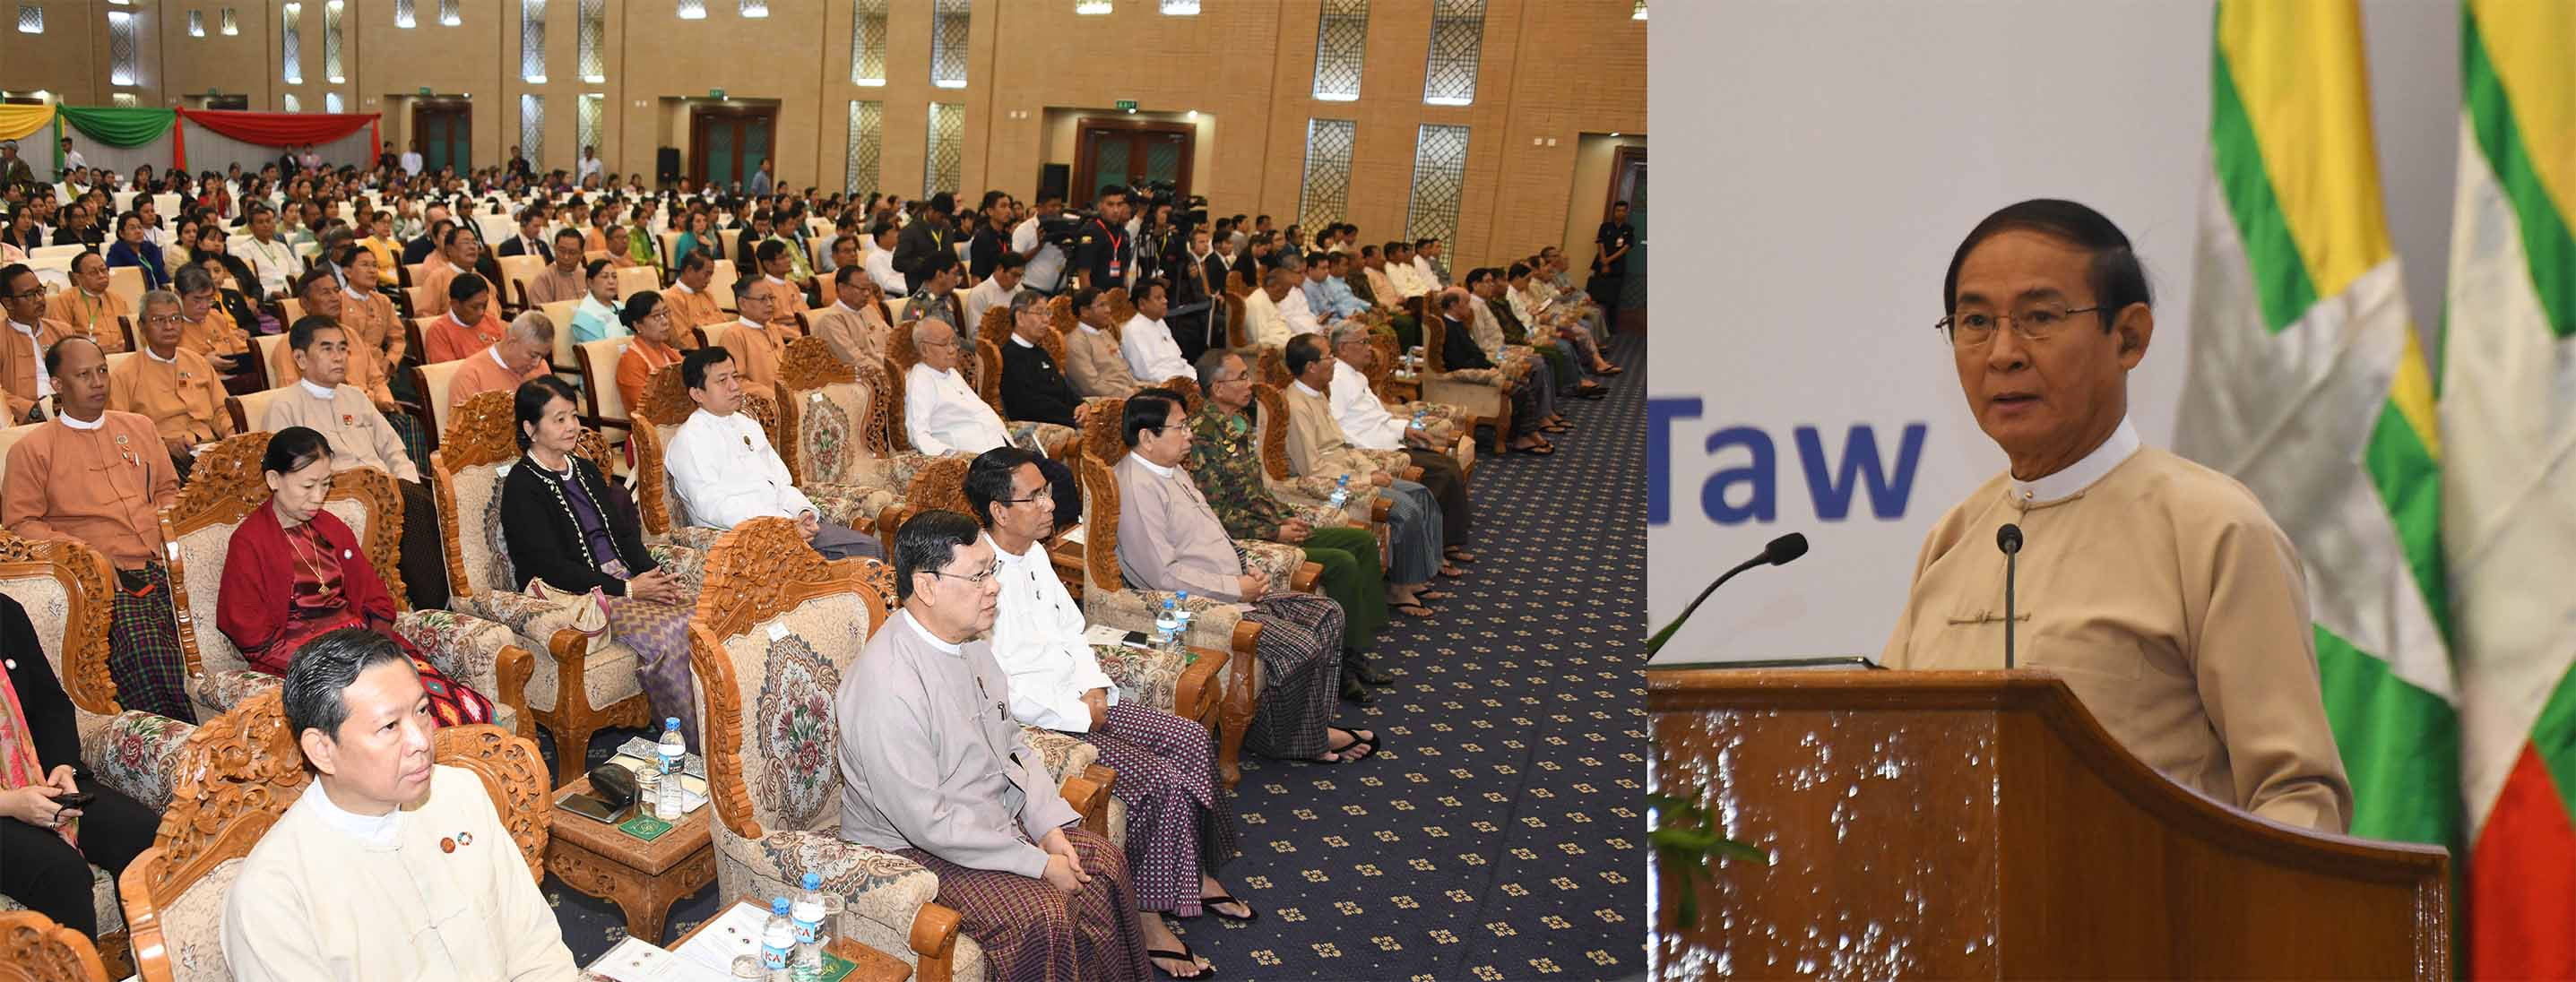 President U Win Myint addresses the event to mark the International Anti-Corruption Day at Myanmar Internatonal Convention Centre-II in Nay Pyi Taw yesterday.Photo: MNA